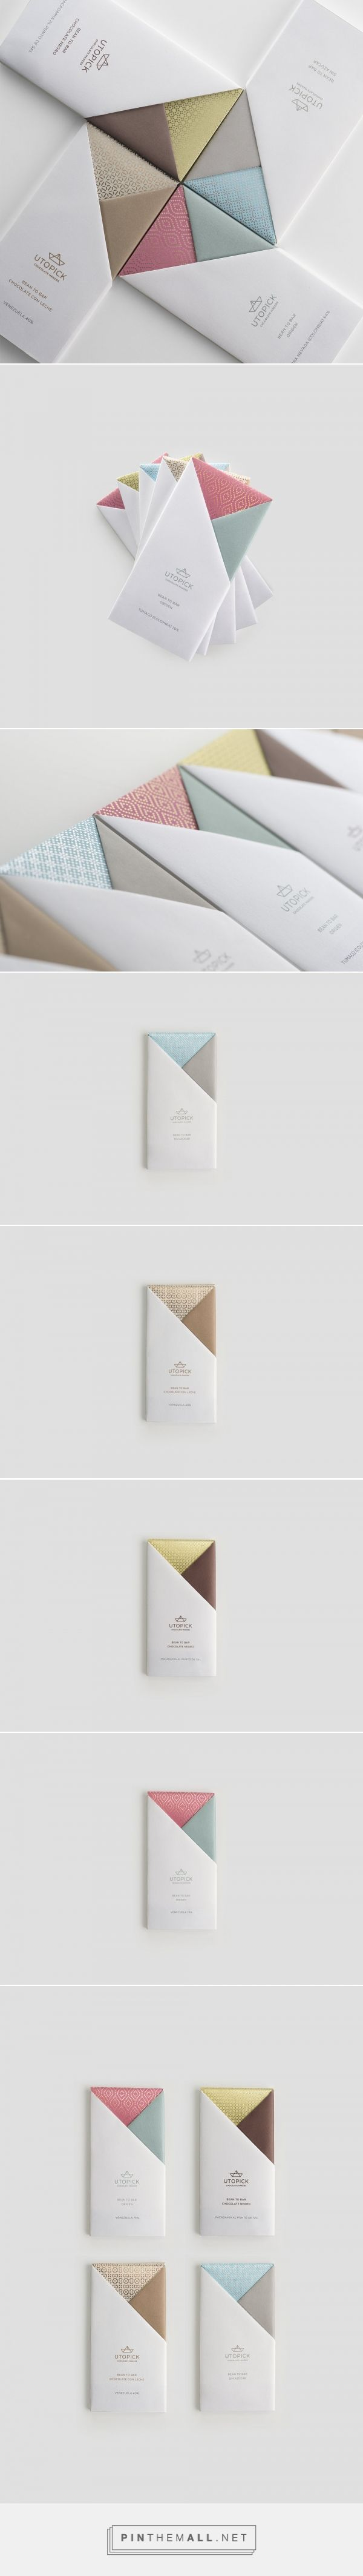 A Lovely Chocolate Bar that's Packaged with Origami #userexperience